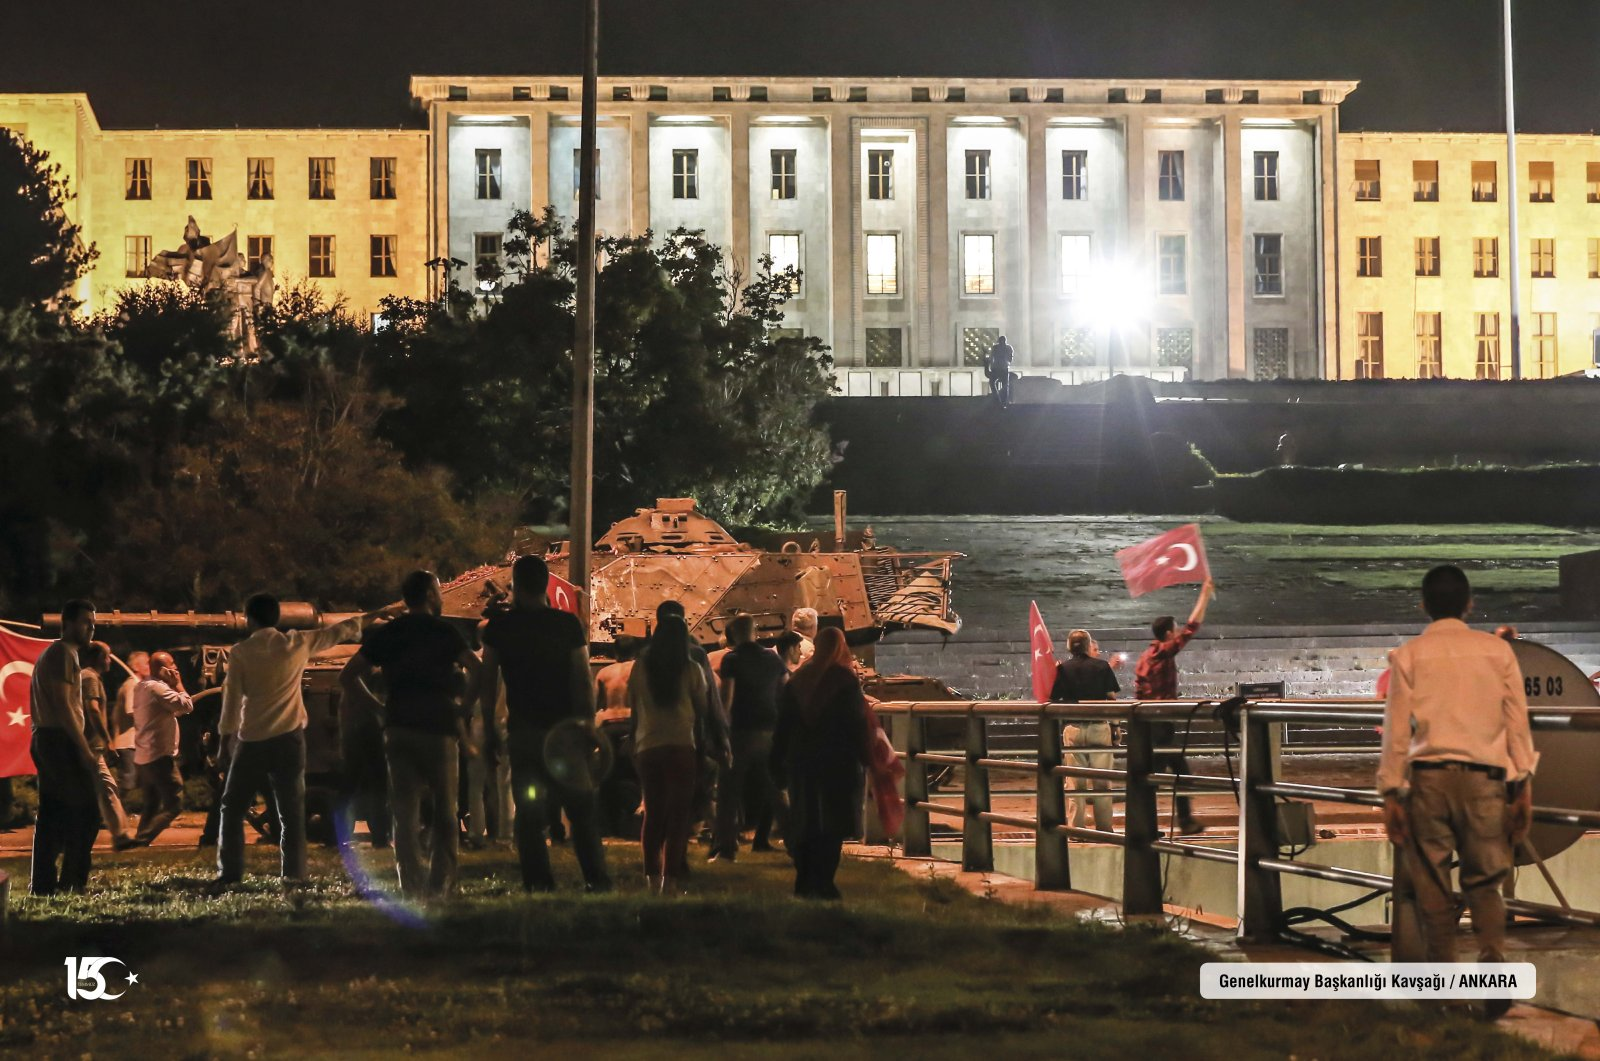 People walk toward the headquarters of the Turkish Armed Forces (TSK) as Gülenist coup plotters invade in the building during the night of the July 15 coup attempt, in the capital Ankara, Turkey, July 15, 2016. (AA Photo)